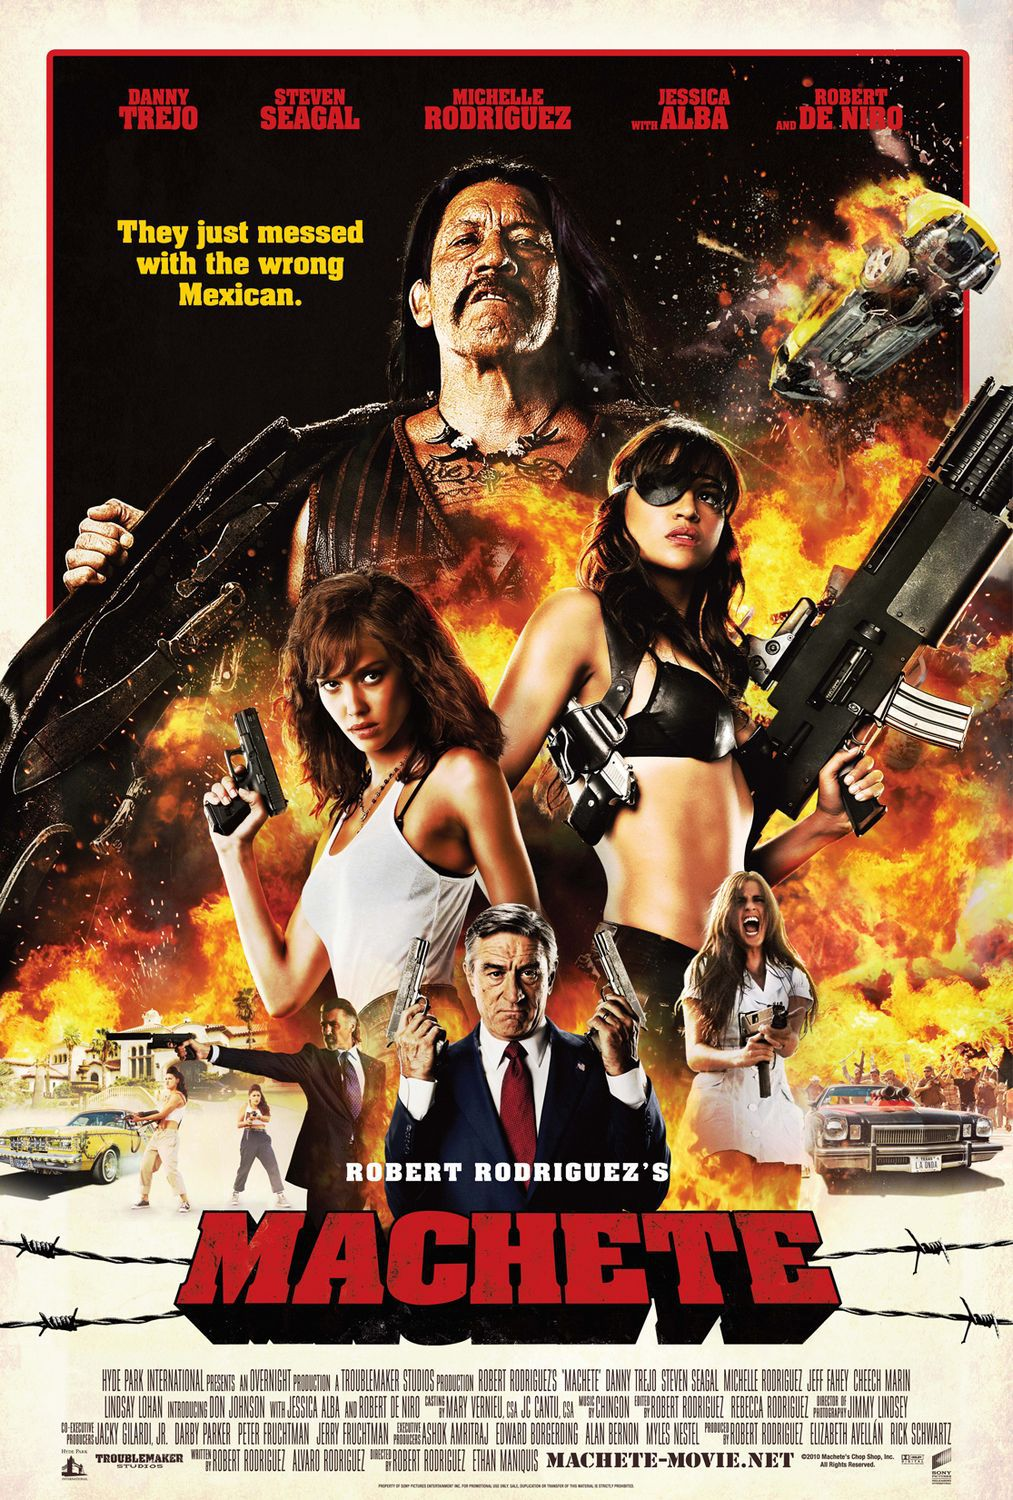 Machete - Live action spallter and fun - Danny Trejo - Steven Segal - Michelle Rodriguez - Jessica Alba - Robert DeNiro ... they just messed with the wrong Mexican ... Robert Rodriguez's Machete